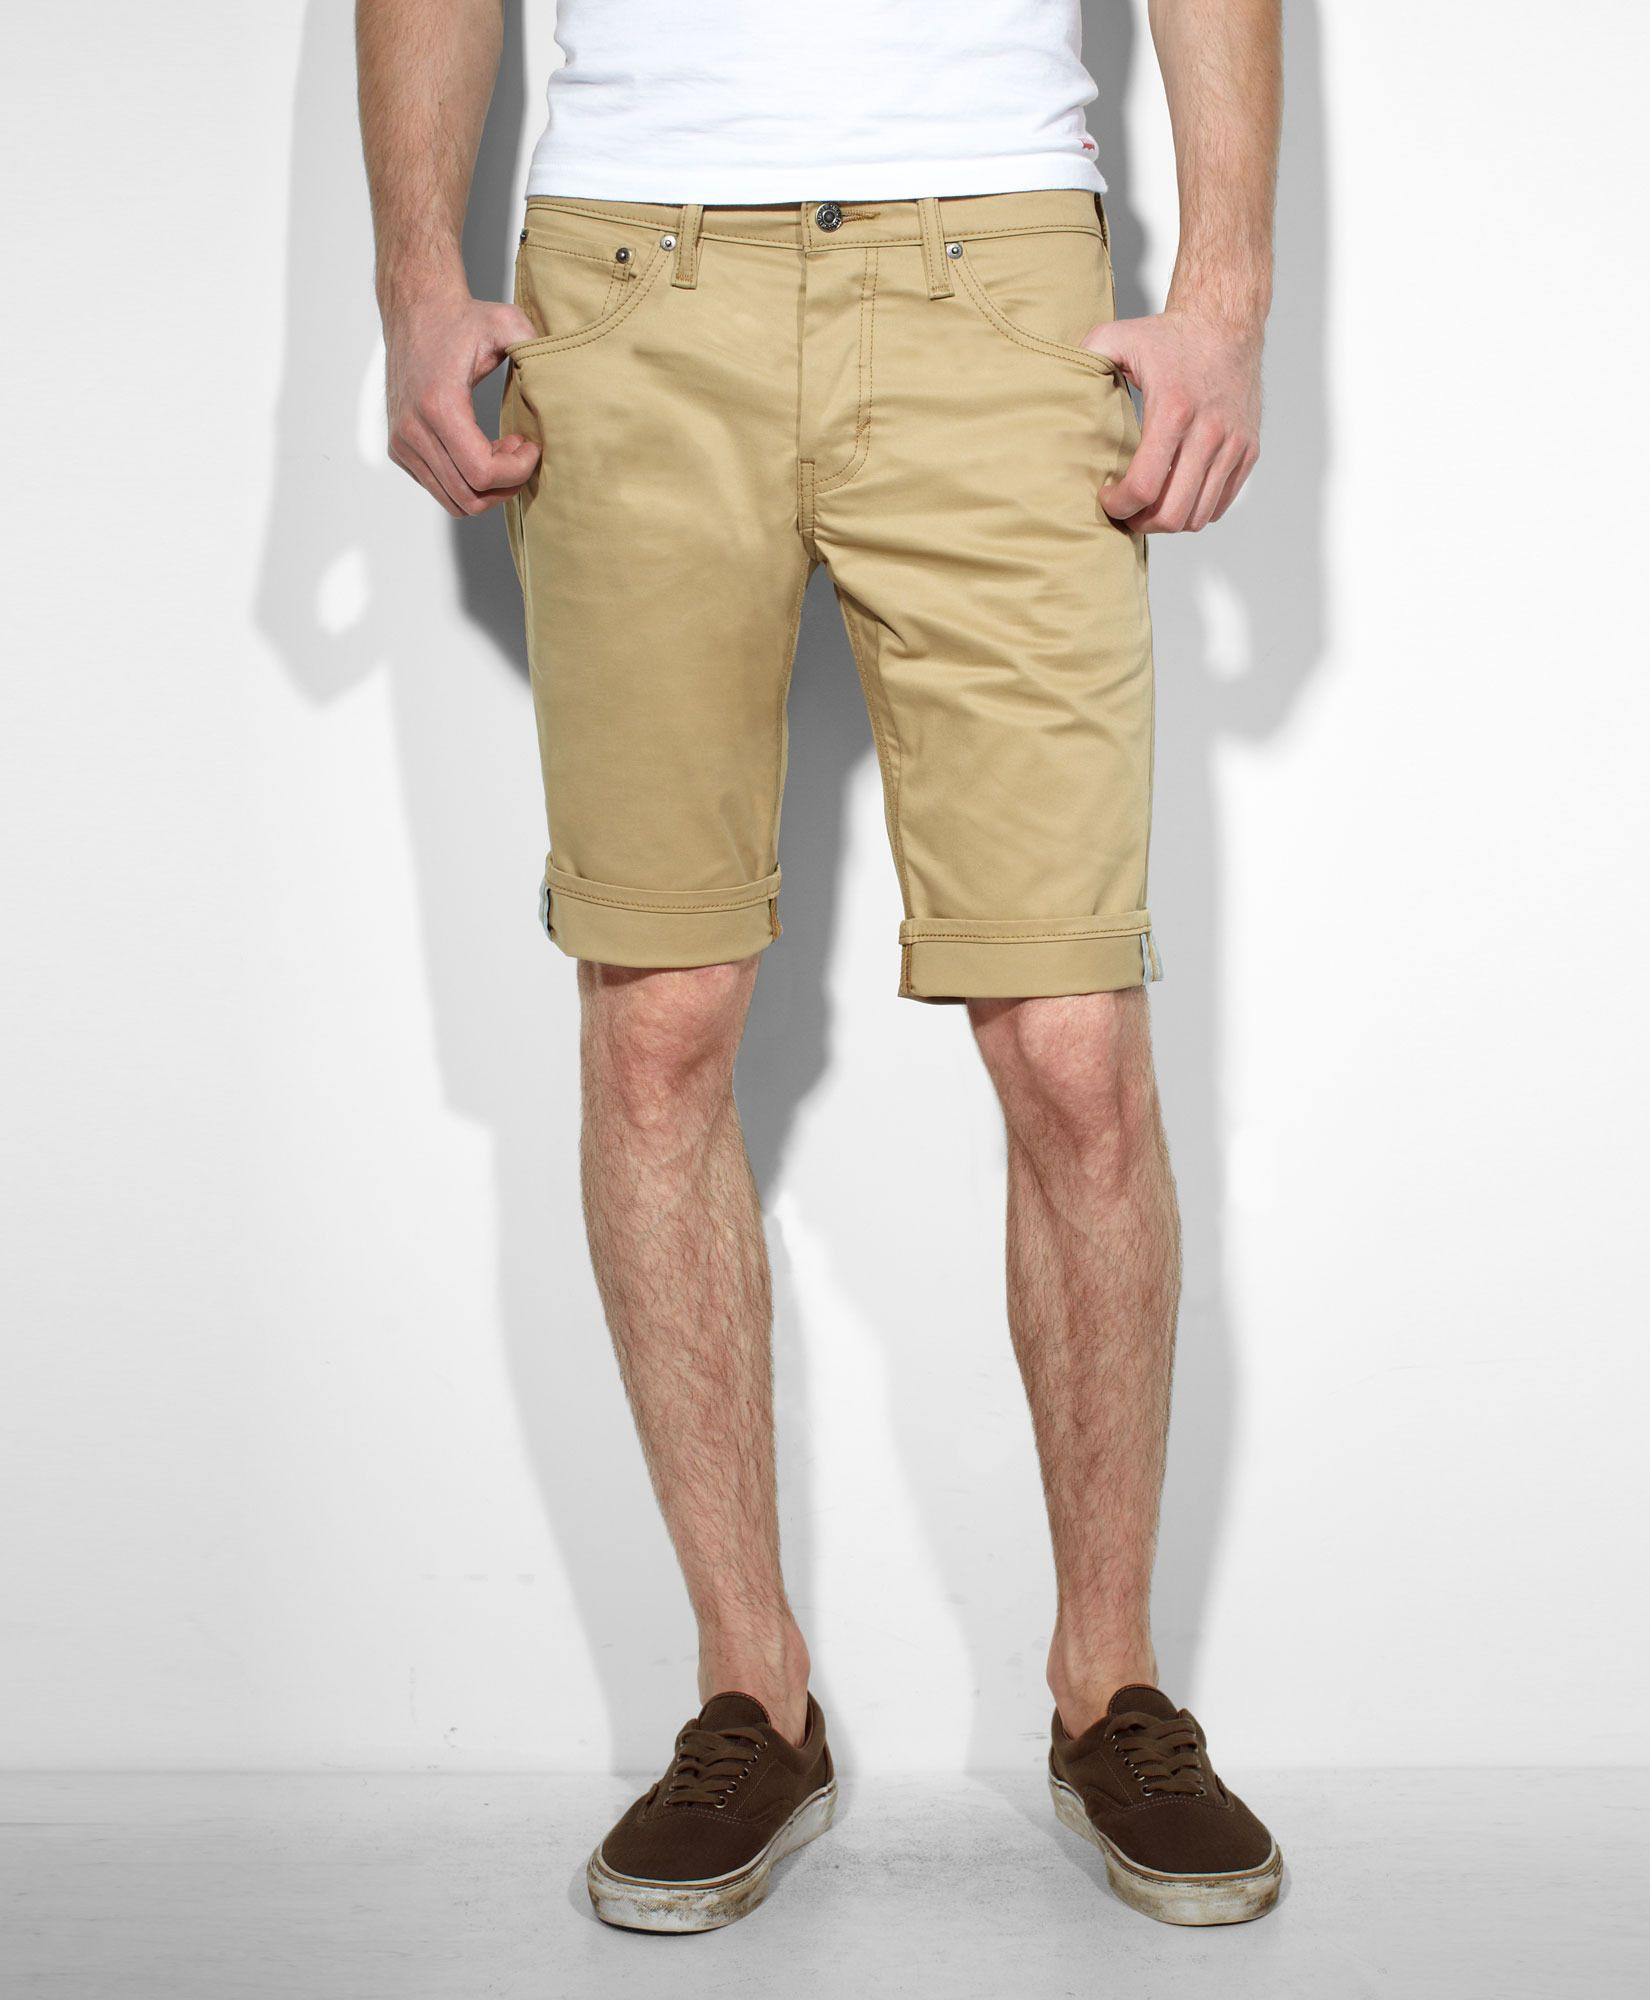 dab67ee1864 Levis 511™ Slim Fit Commuter Shorts - Coastal Gold - Shorts | Style ...